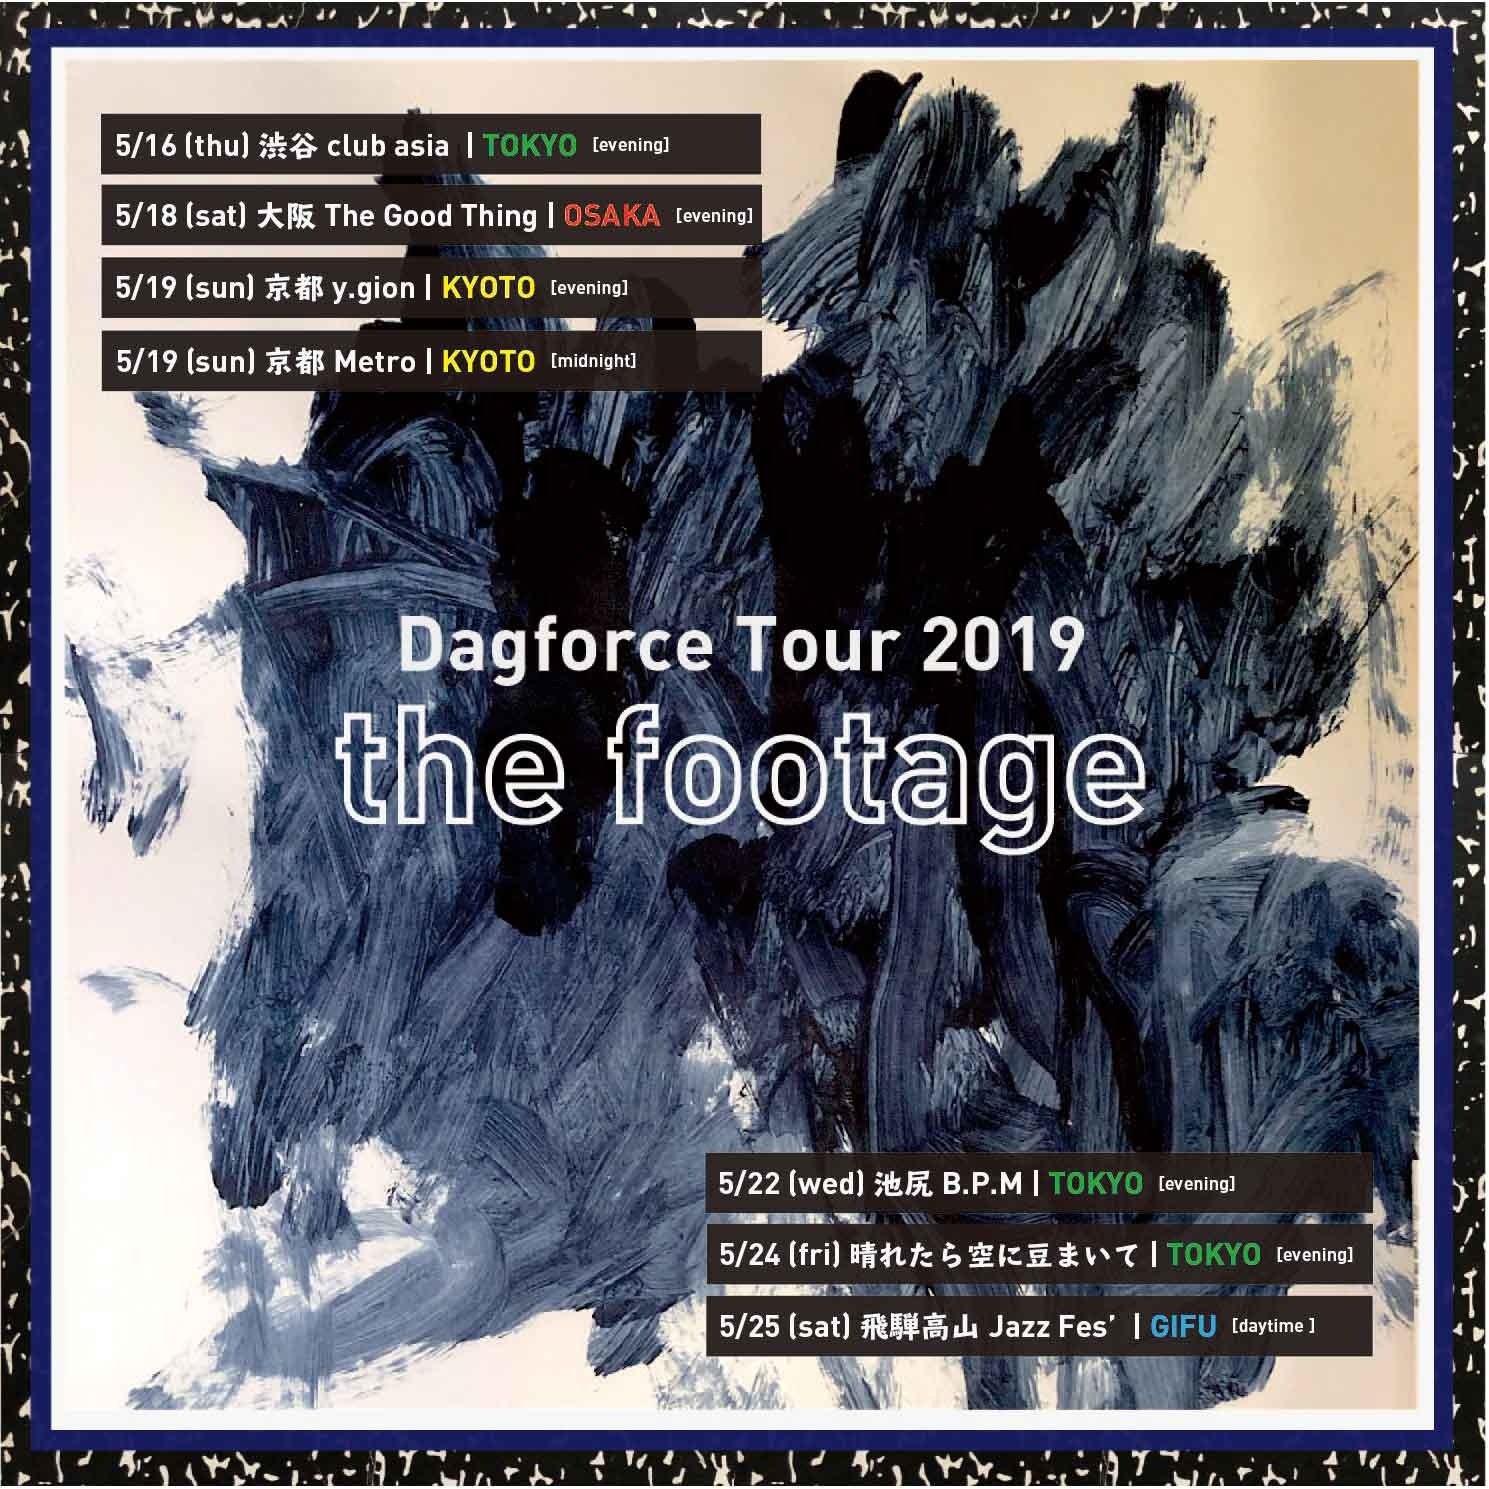 Dagforce 凱旋 Tour 2019  「footage」-Ultimate Jam Sessions in Kyoto Metro